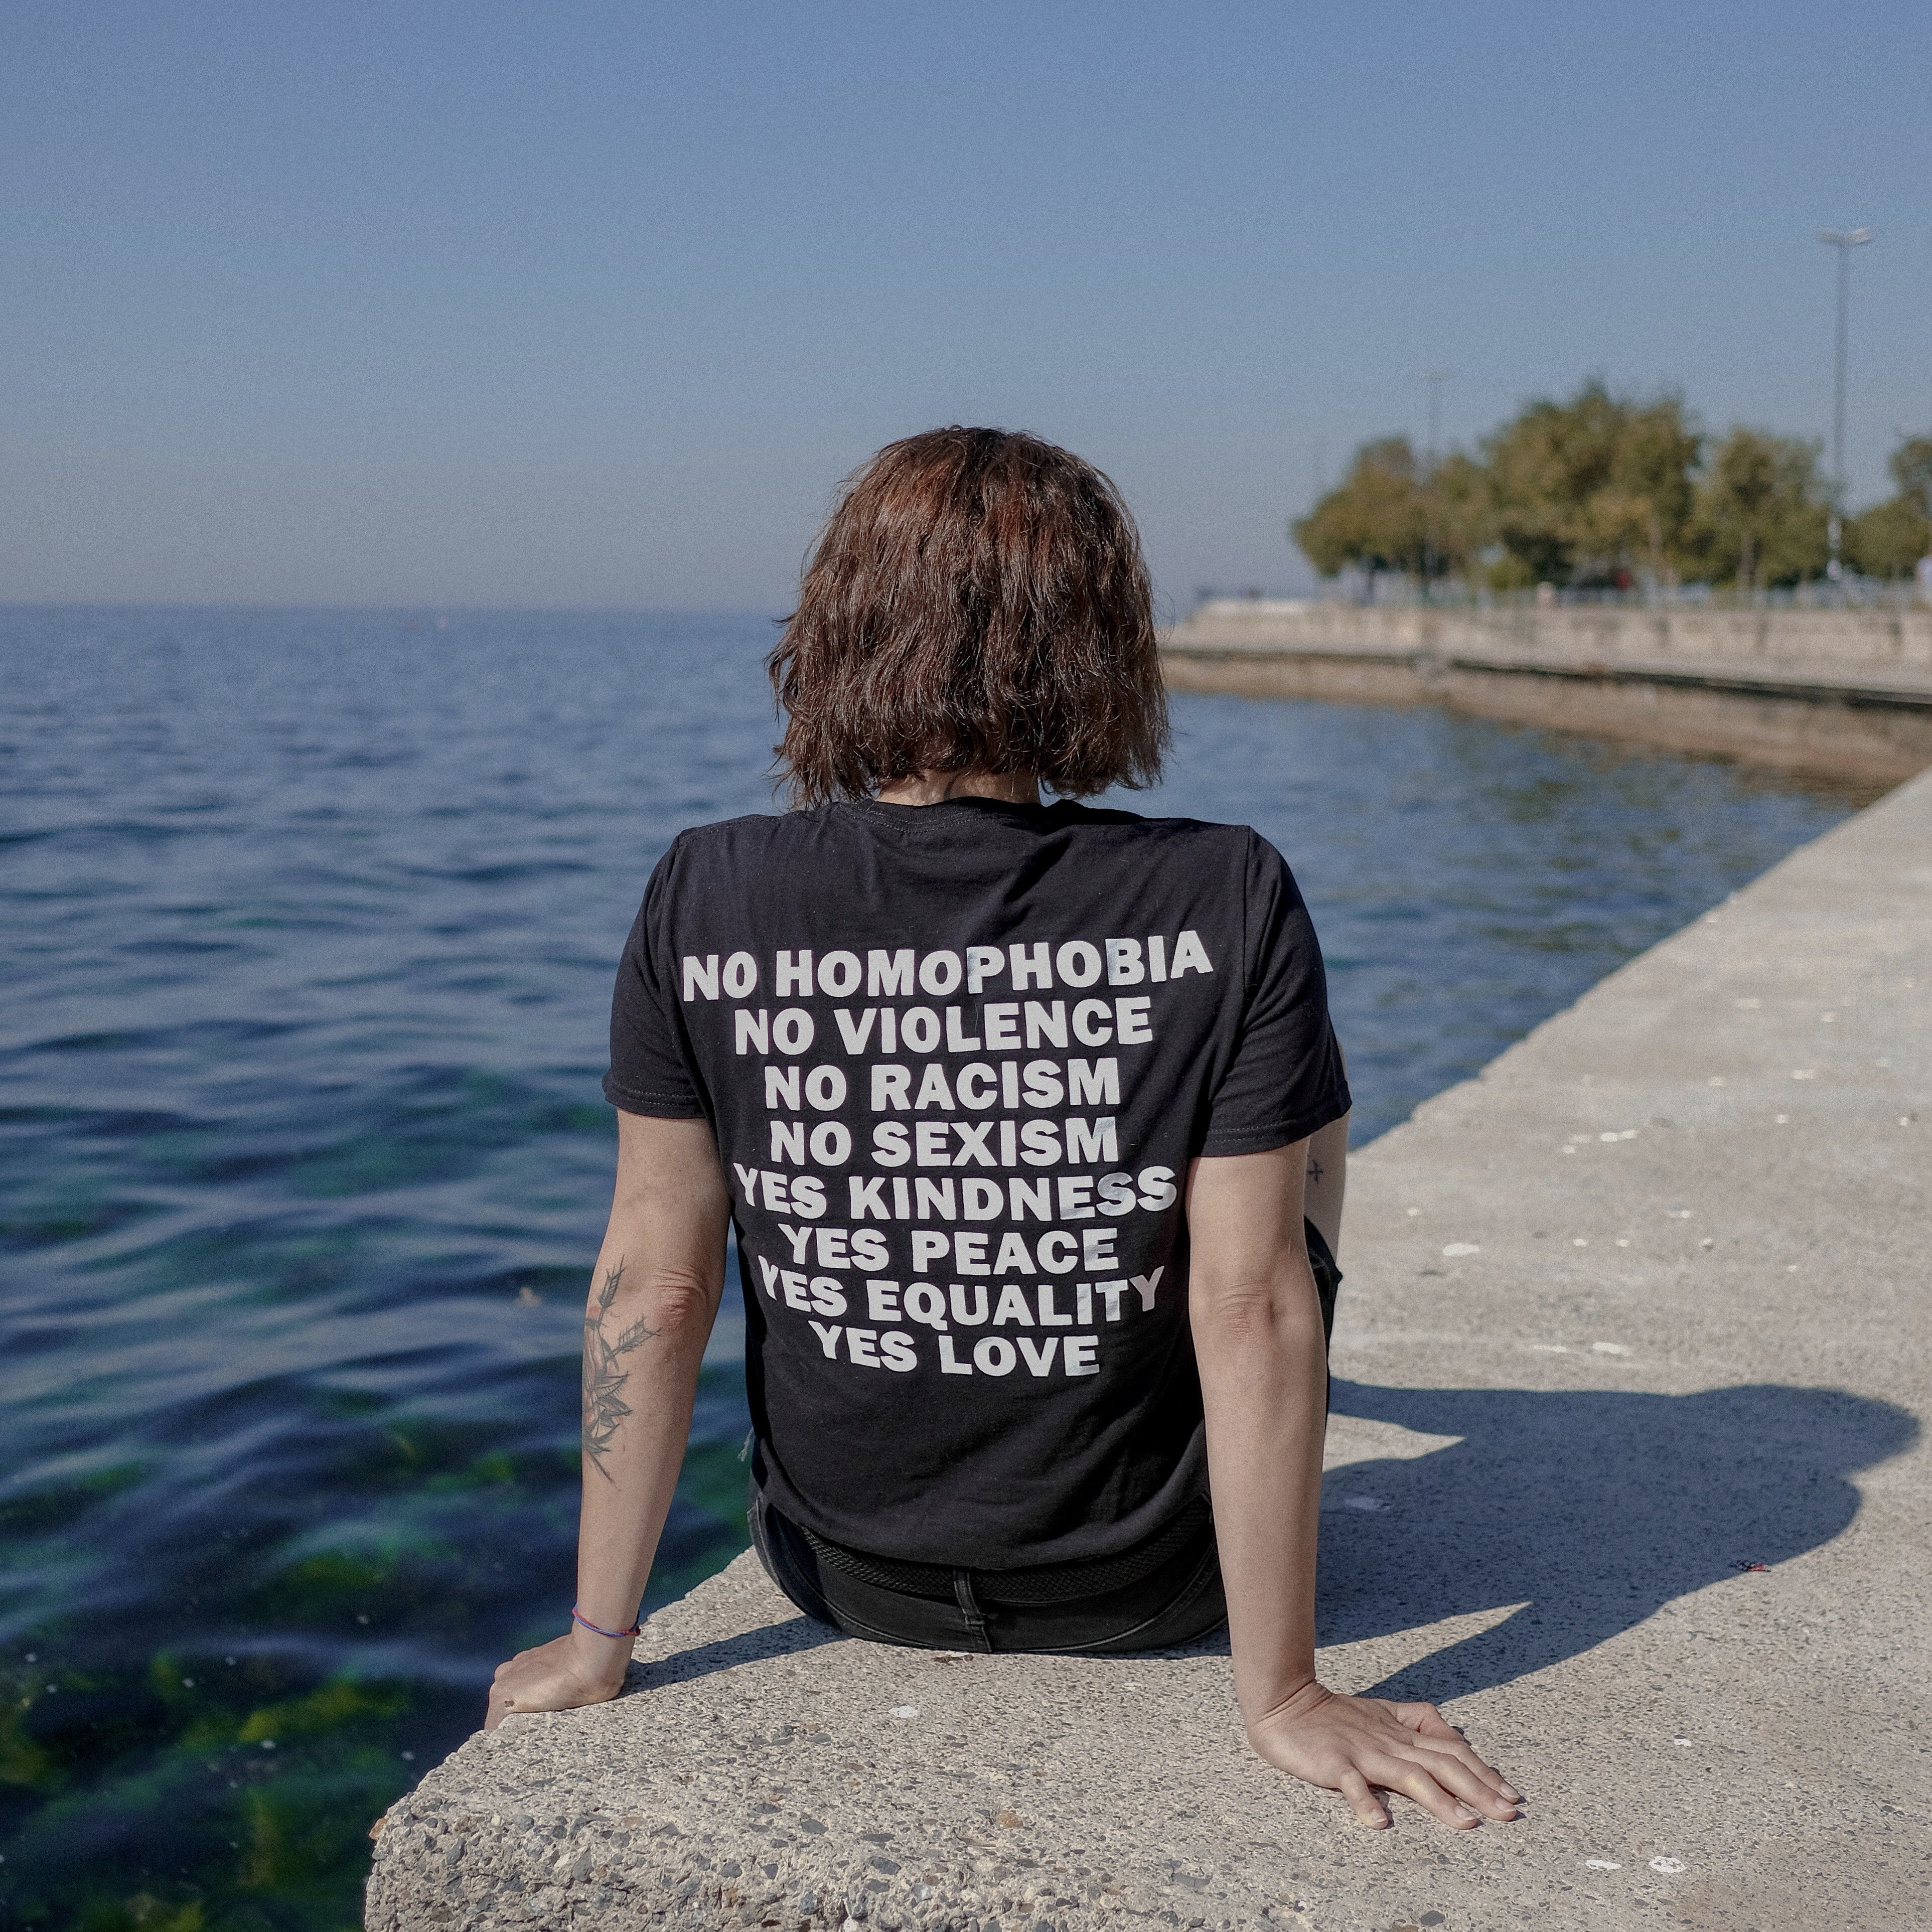 image of someone sat by water with graphic t-shirt on